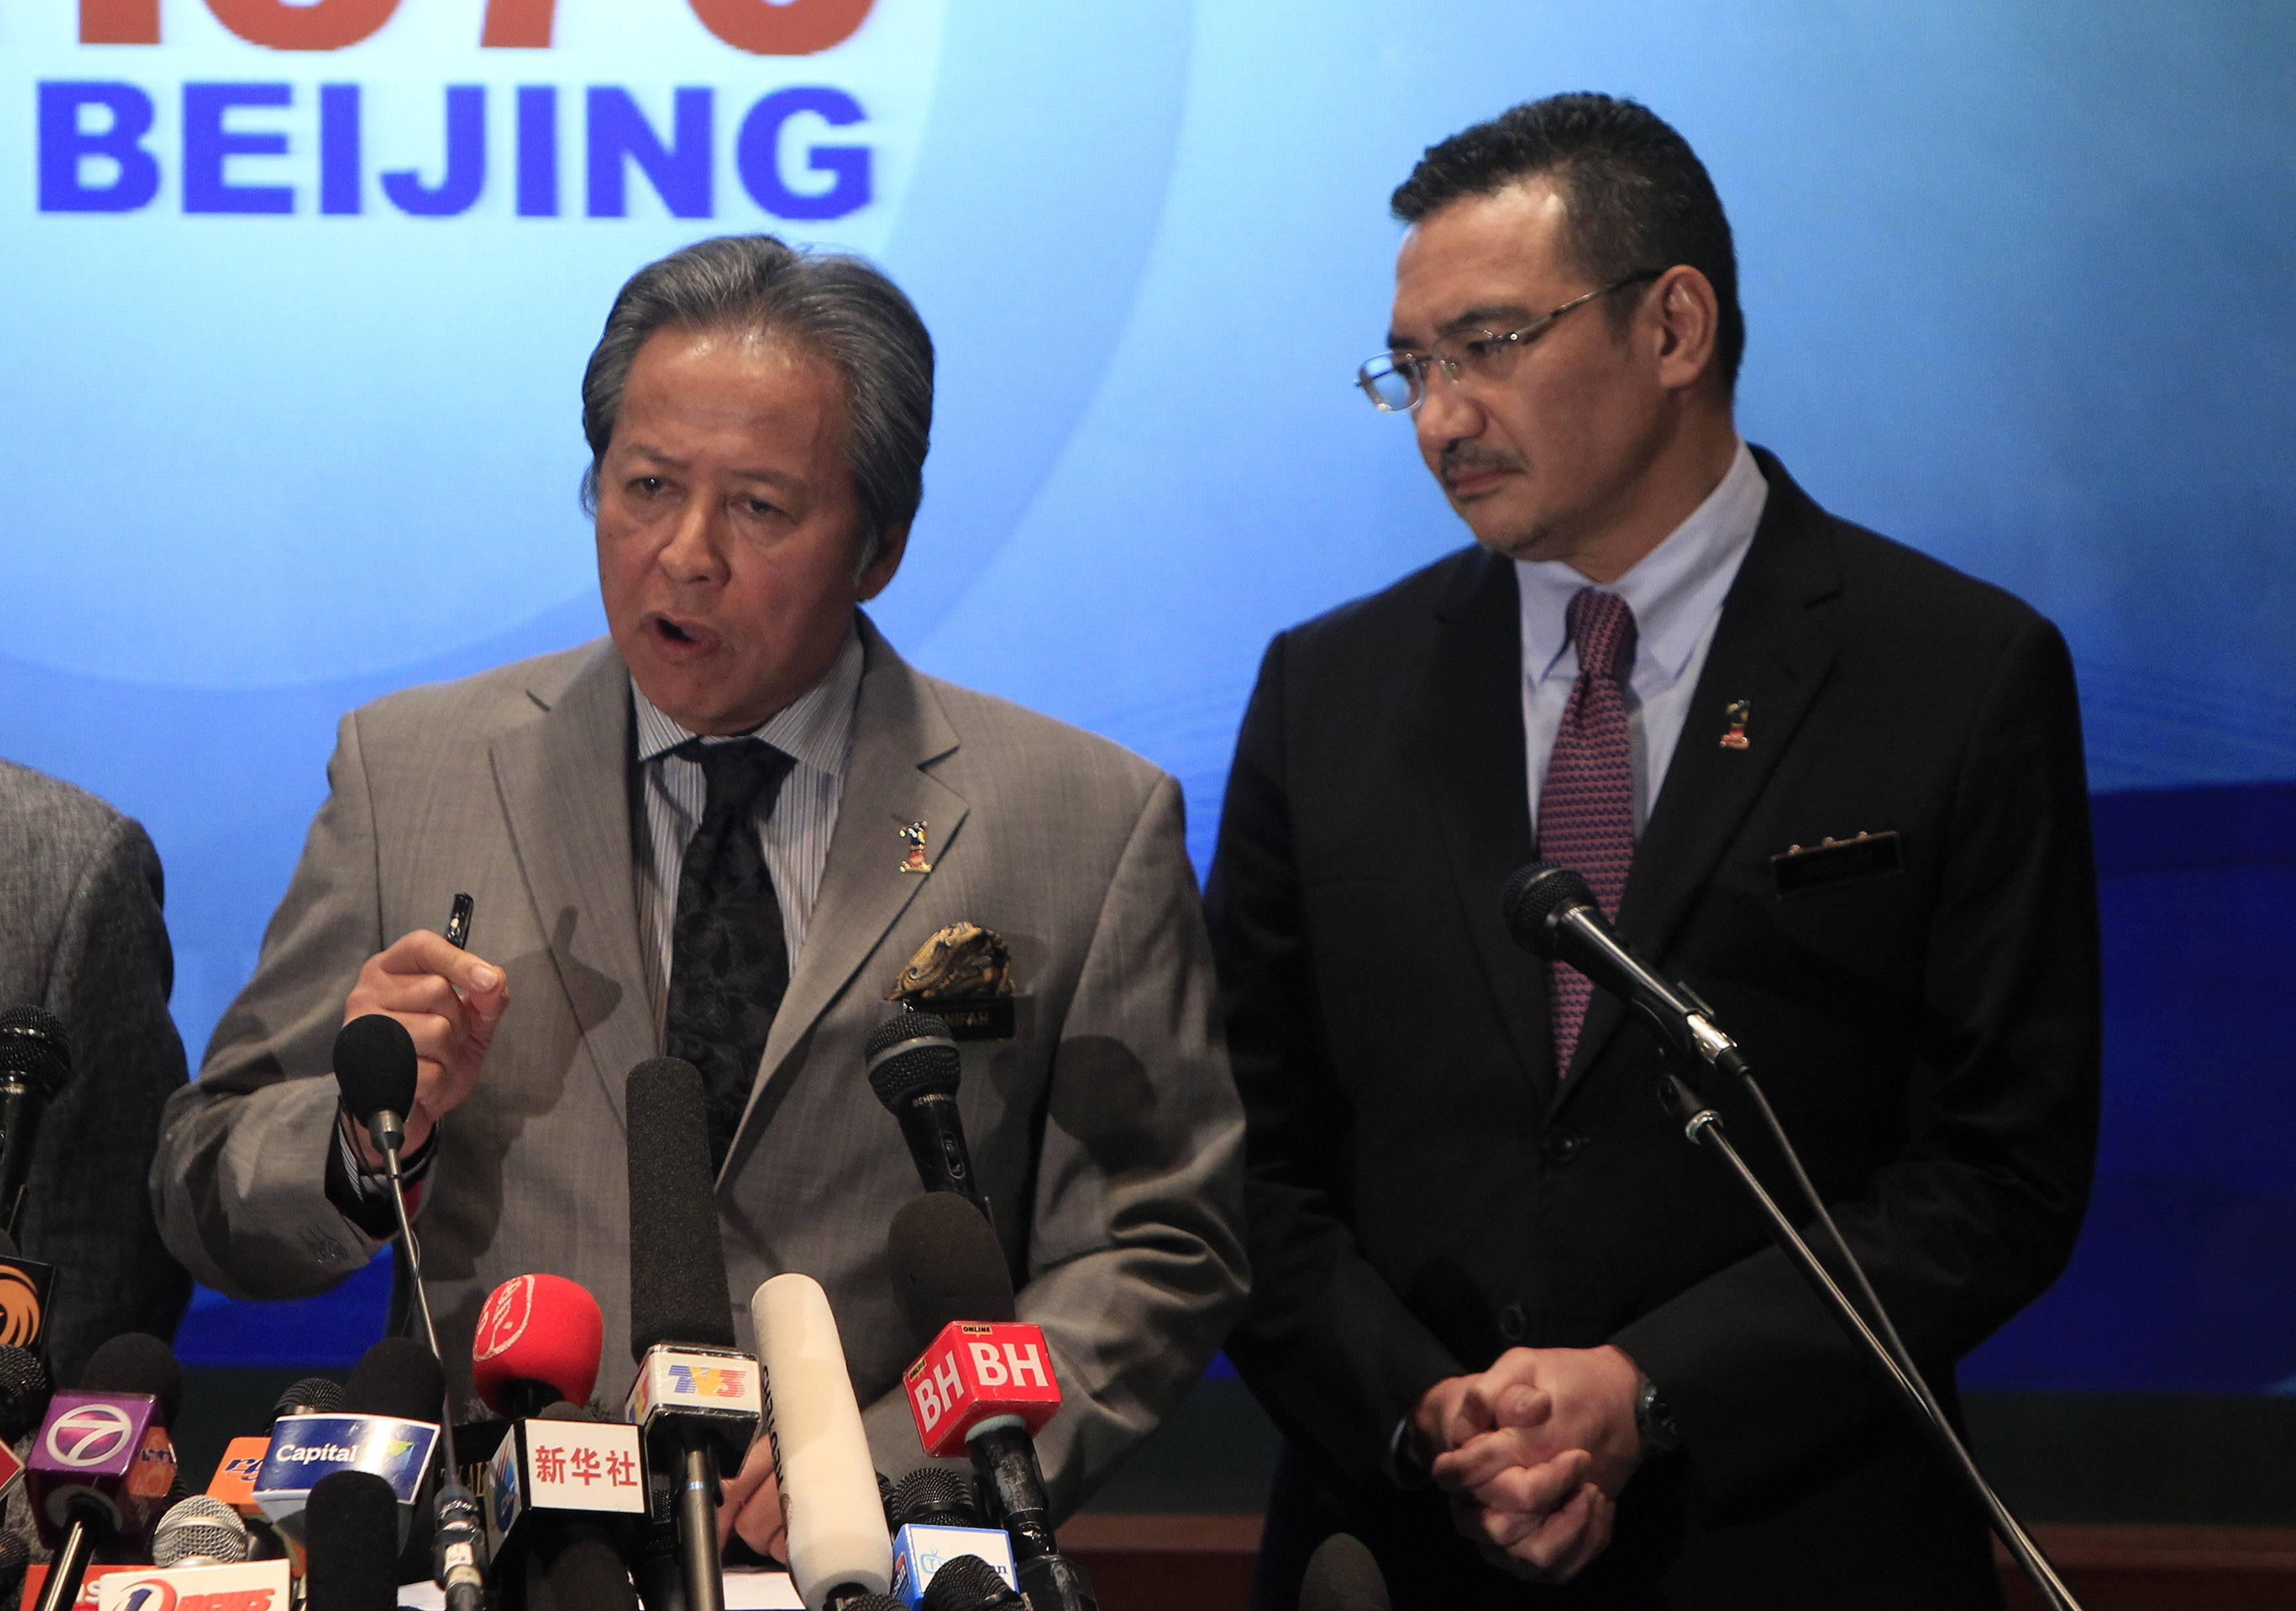 Malaysian Foreign Minister Anifah Aman, left, speaks as Malaysian acting Transport Minister Hishammuddin Hussein listens during a press conference at a hotel in Sepang, Malaysia, Tuesday, March 18, 2014.